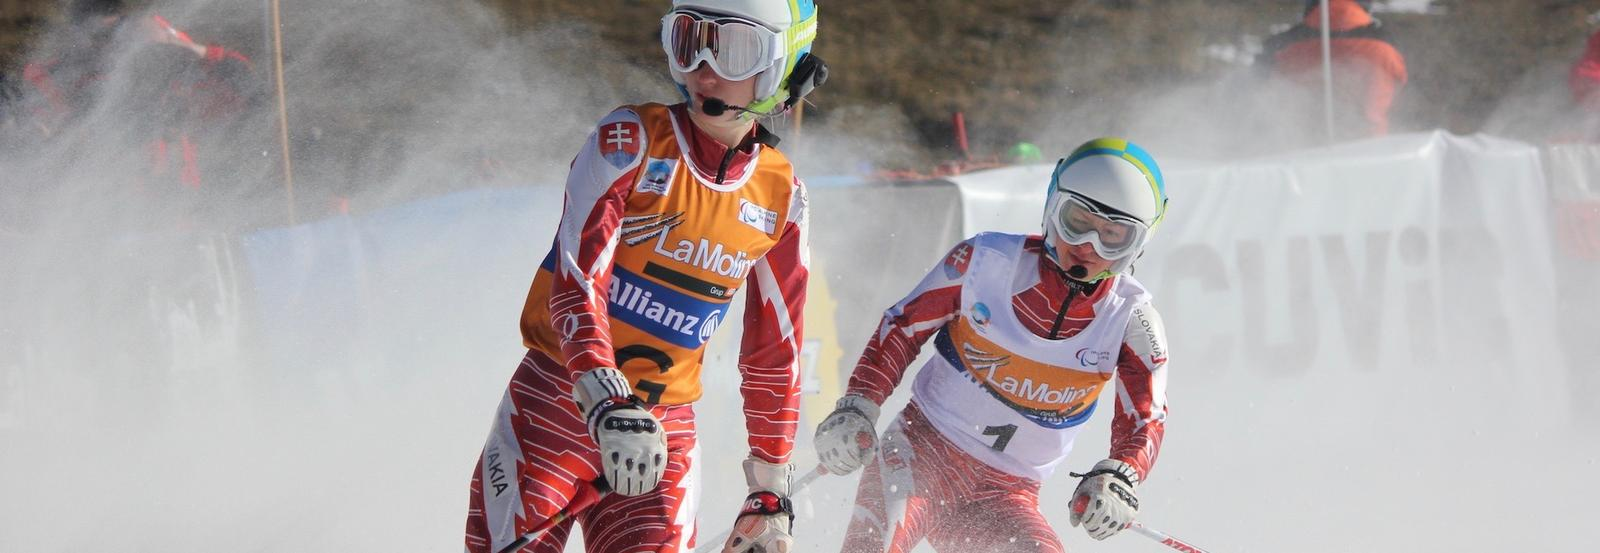 The women's visually impaired Super-G event at the 2013 IPC Alpine World Championships in La Molina, Spain.